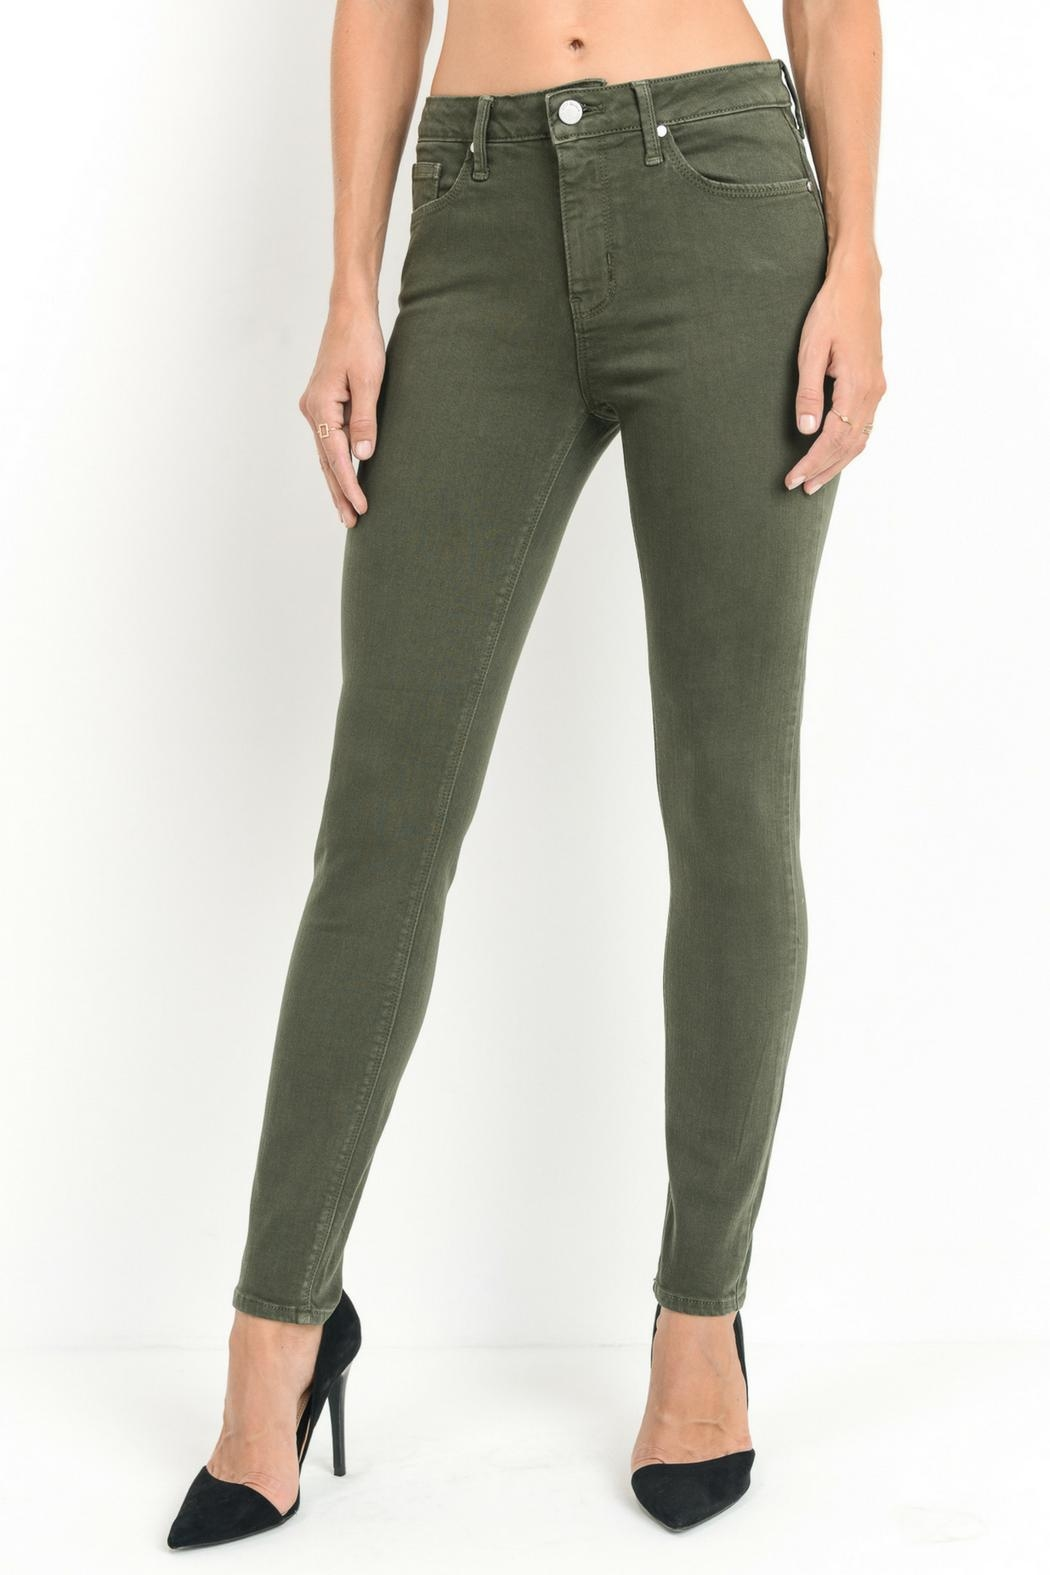 just black Skinny Jeans Olive from Virginia by Sweetest Stitch ... 18b822bff